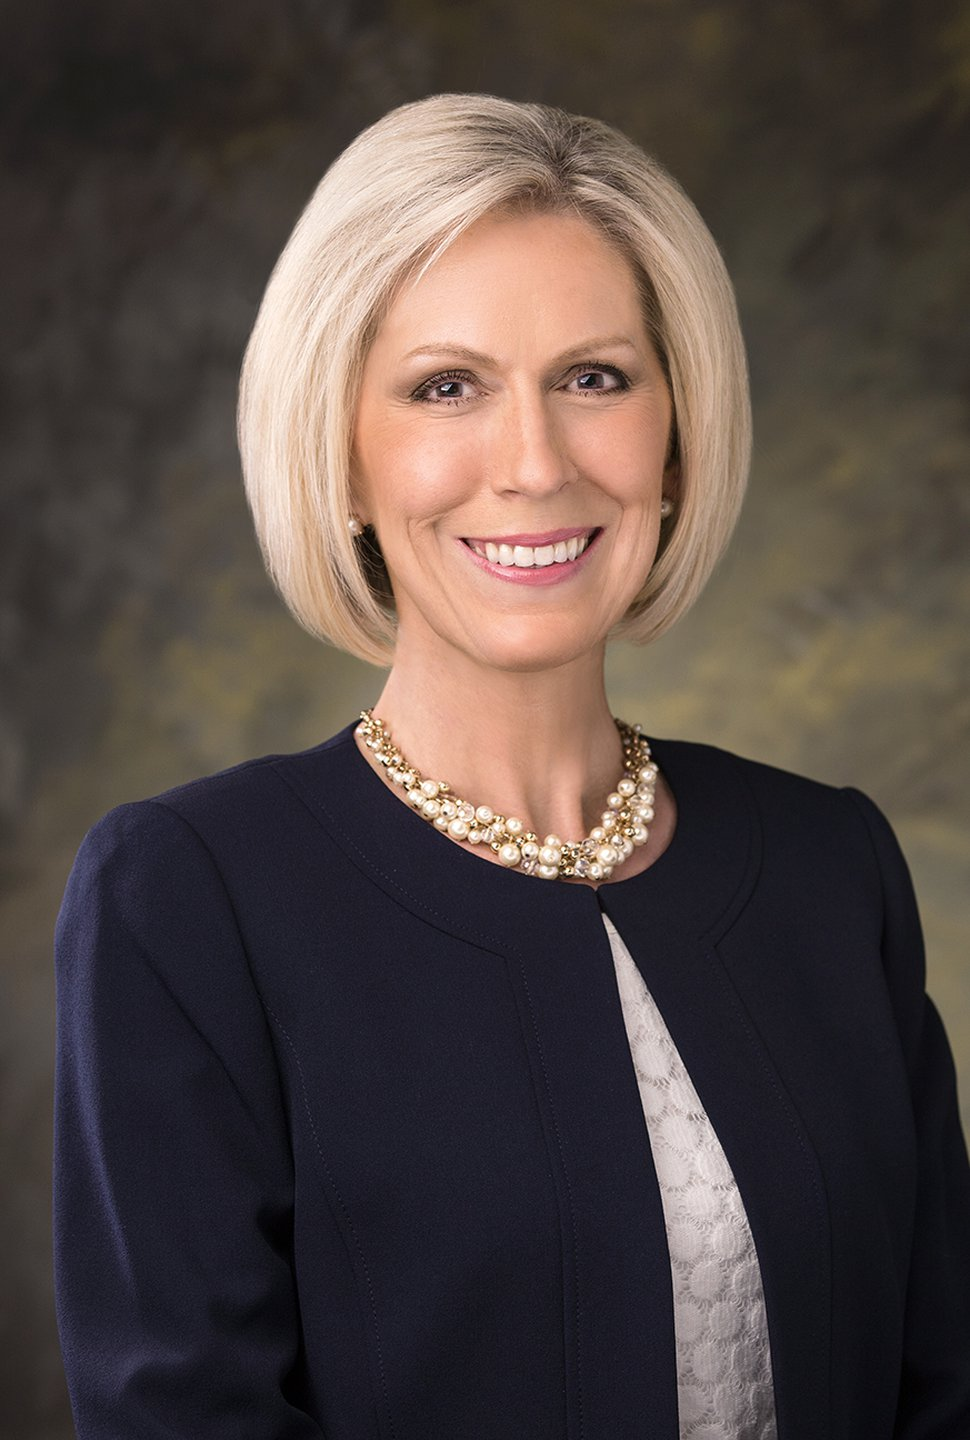 (Courtesy of the LDS Church) Sister Joy D. Jones, Primary general president of The Church of Jesus Christ of Latter-day Saints